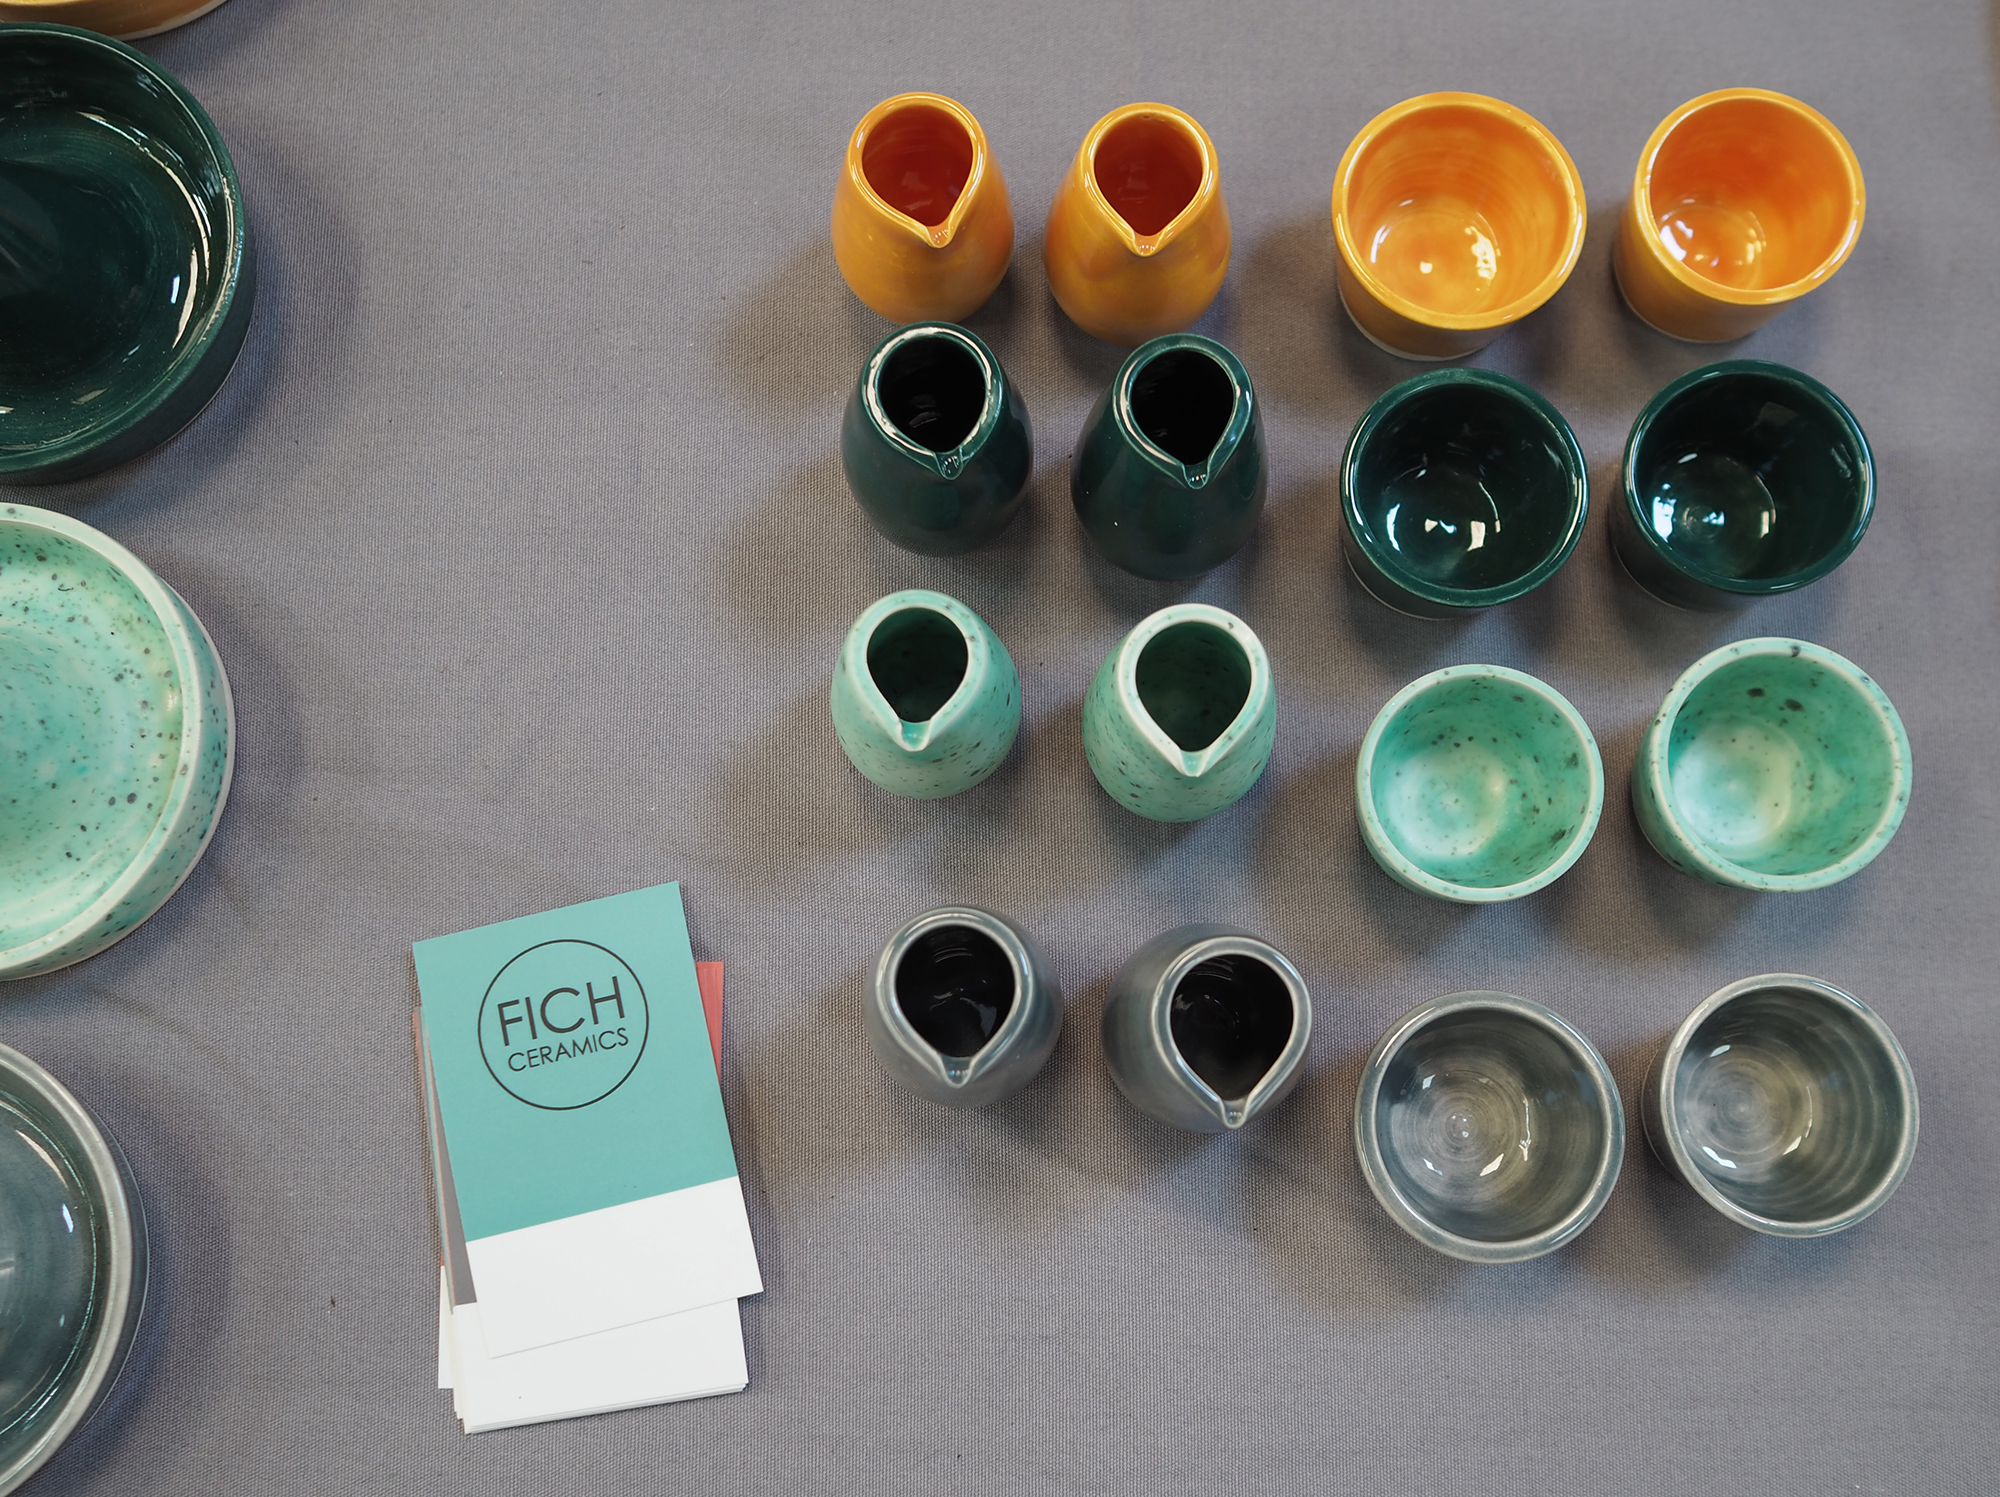 www.fichceramics.co.uk    @FICHceramics